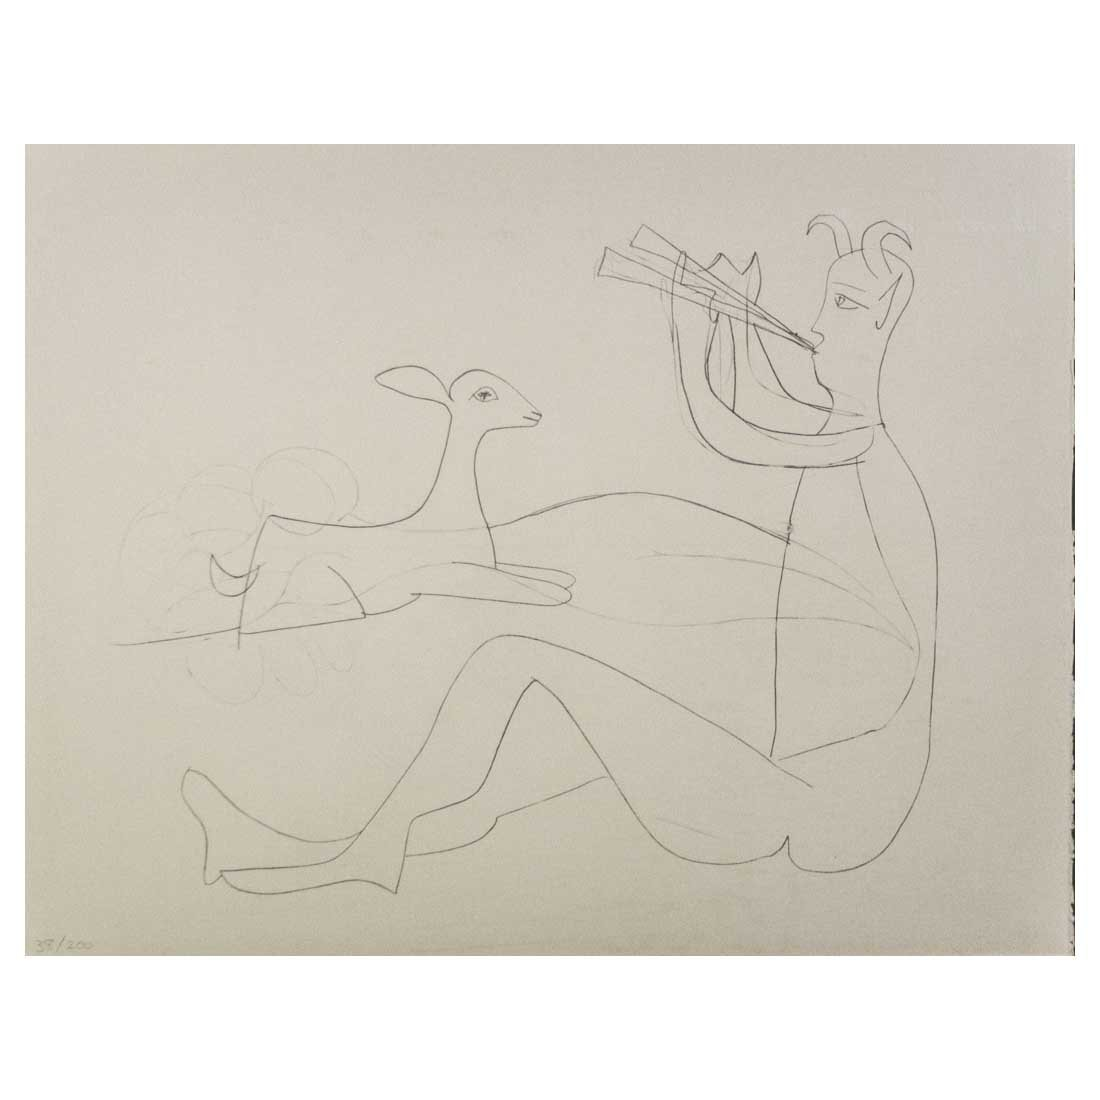 Picasso - Untitled from Mes dessins d'antibes